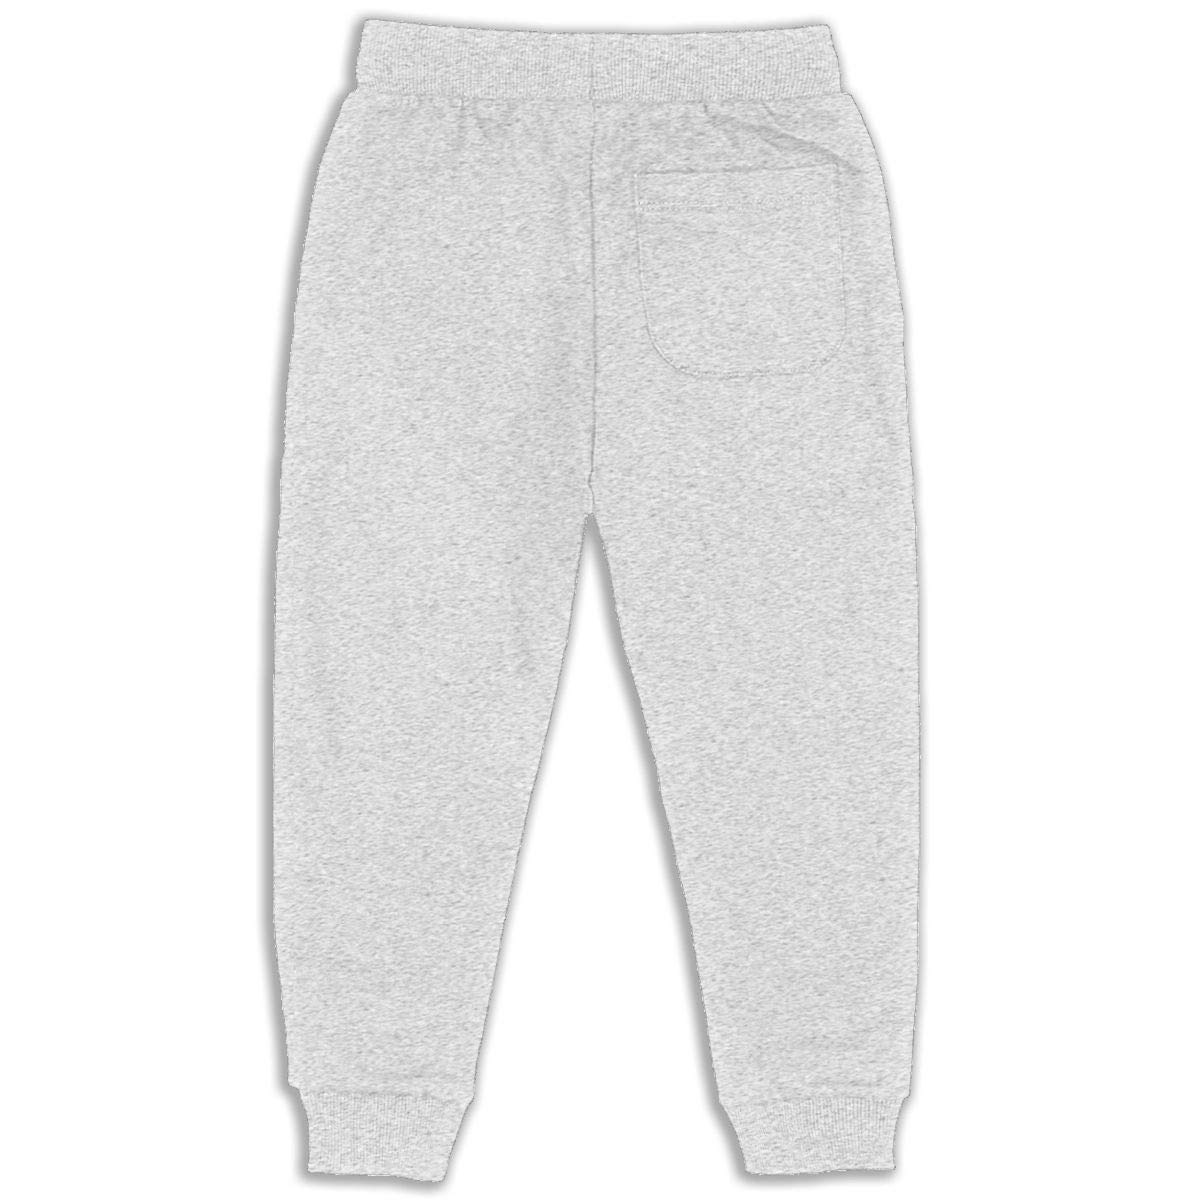 Laoyaotequ Trick Kids Cotton Sweatpants,Jogger Long Jersey Sweatpants